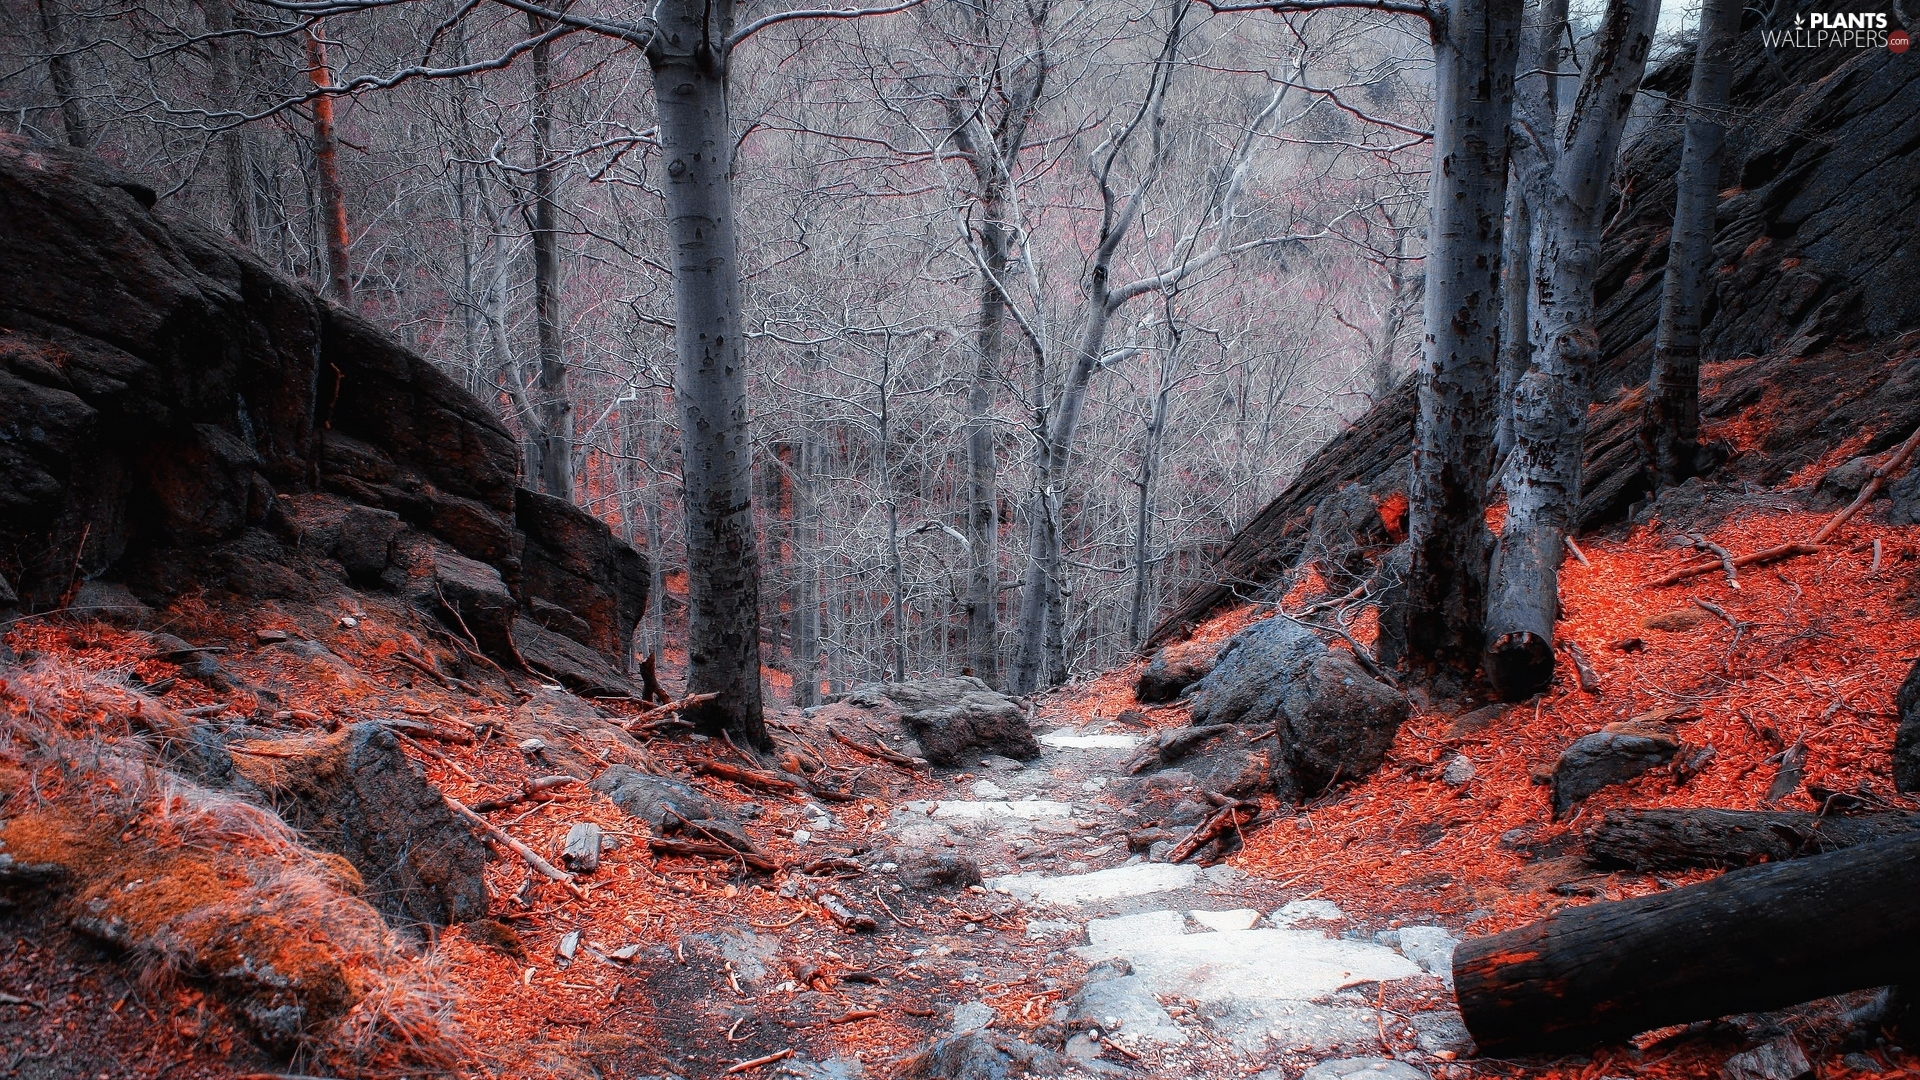 Stones, leafless, viewes, Leaf, Way, forest, trees, autumn, fallen, rocks